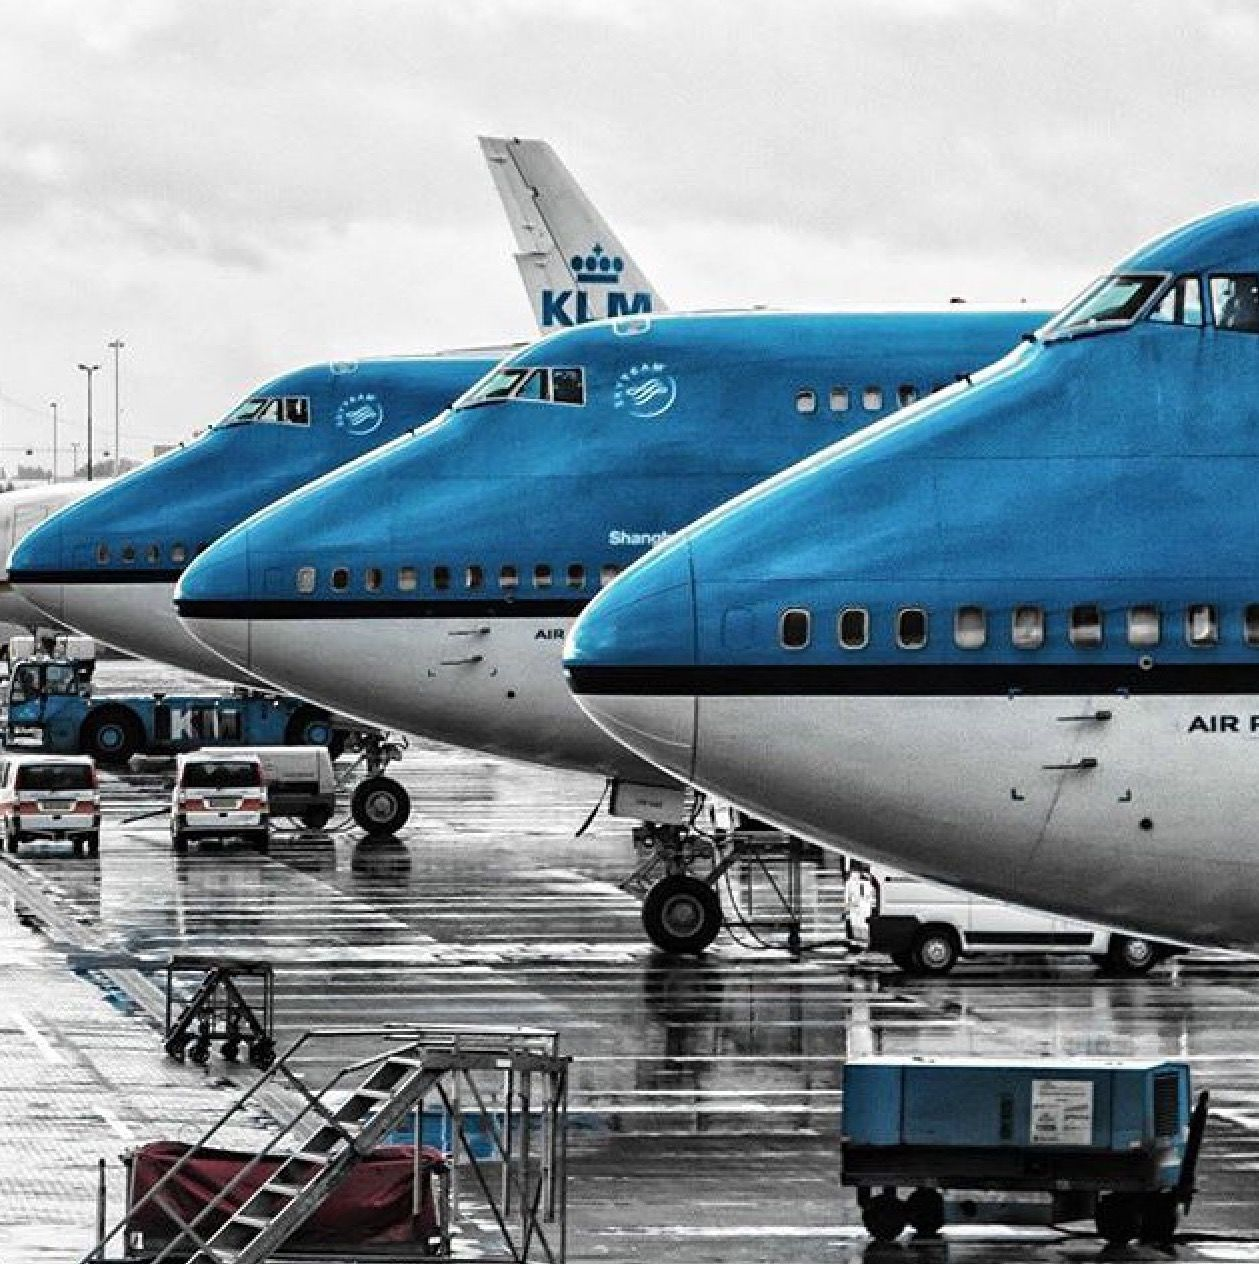 Three Klm Boeing 747 400s Aviation Airplane Klm Royal Dutch Airlines Aircraft